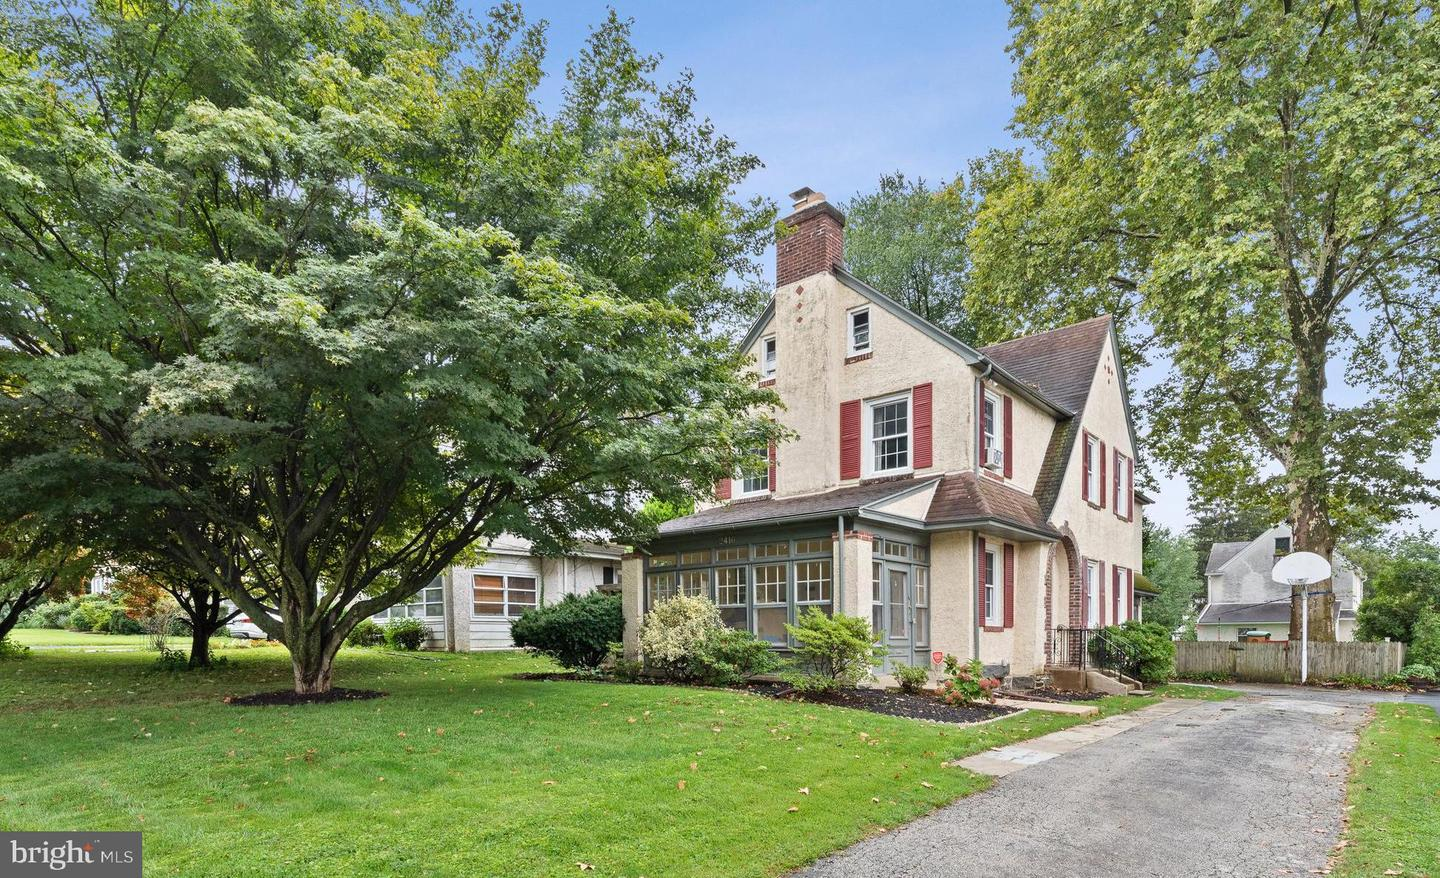 2416 Whitby Road Havertown, PA 19083